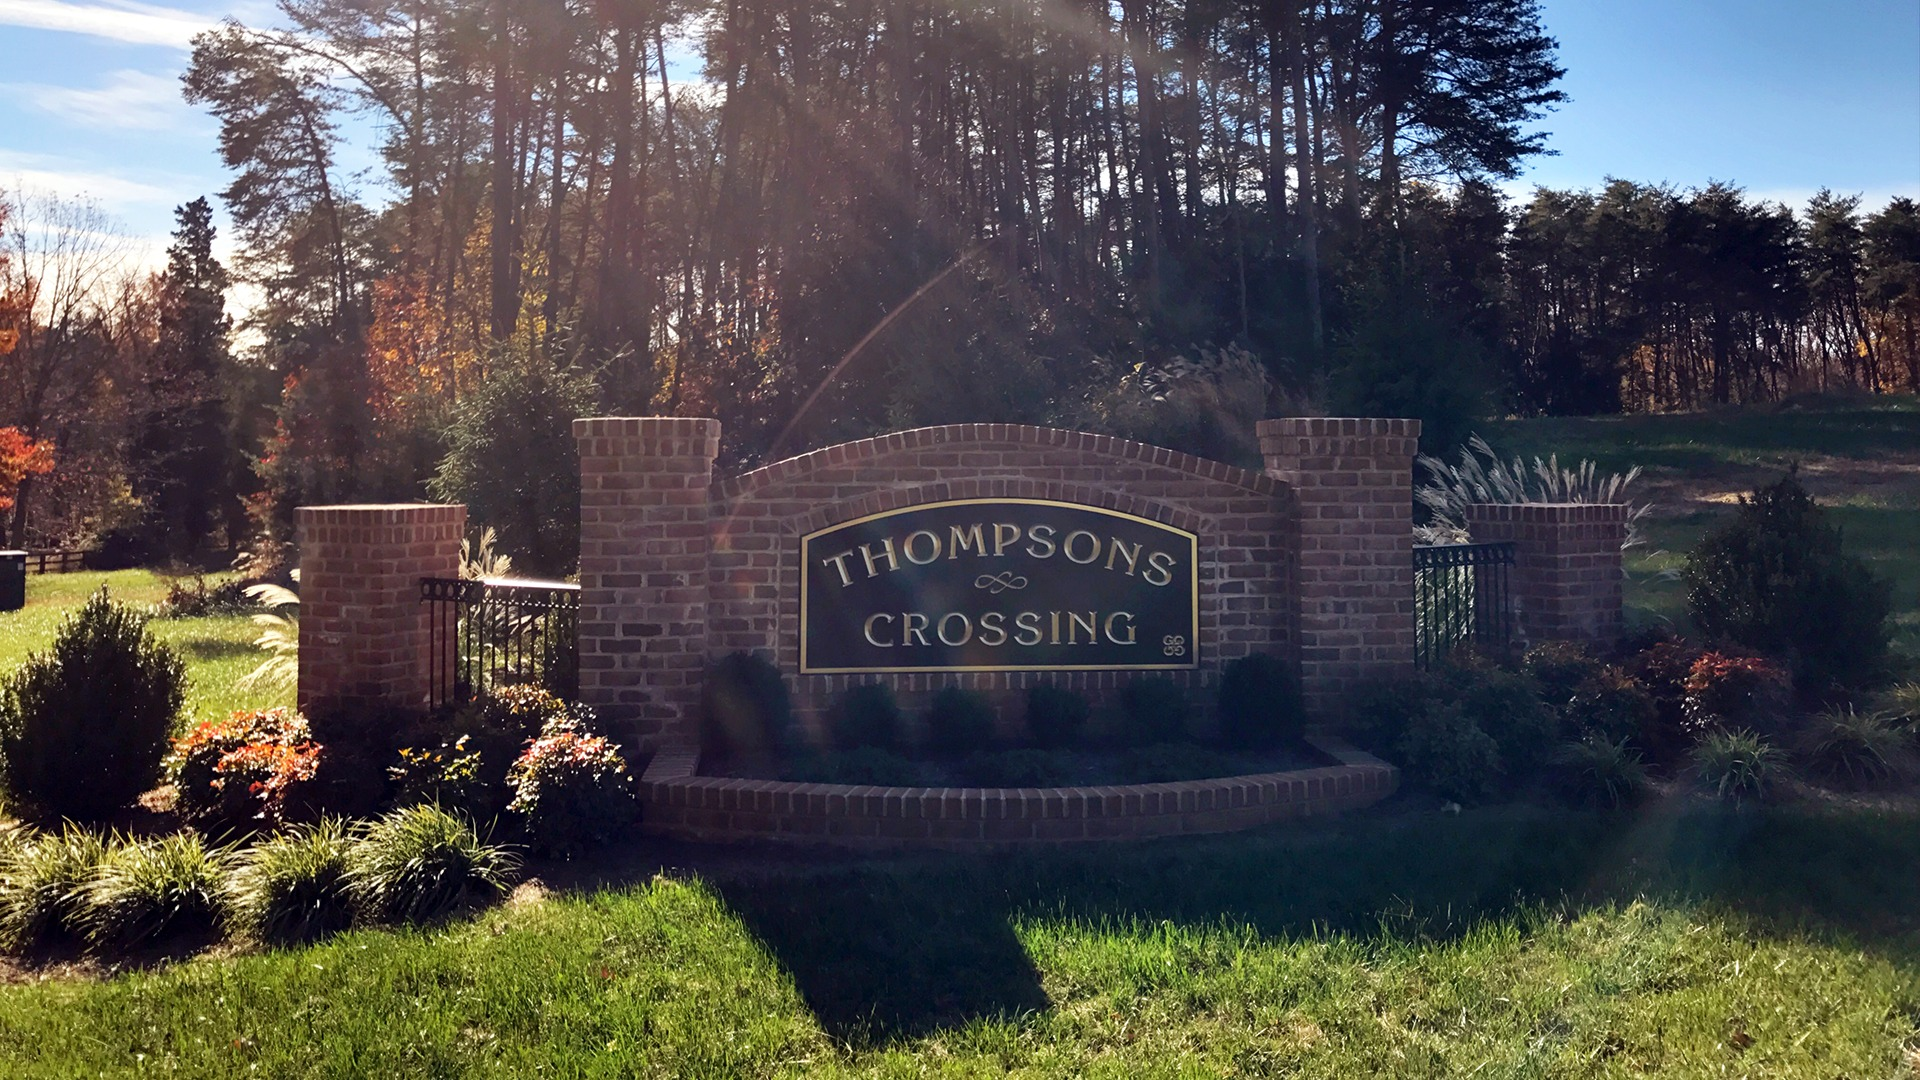 The Thompson's Crossing entrance feature